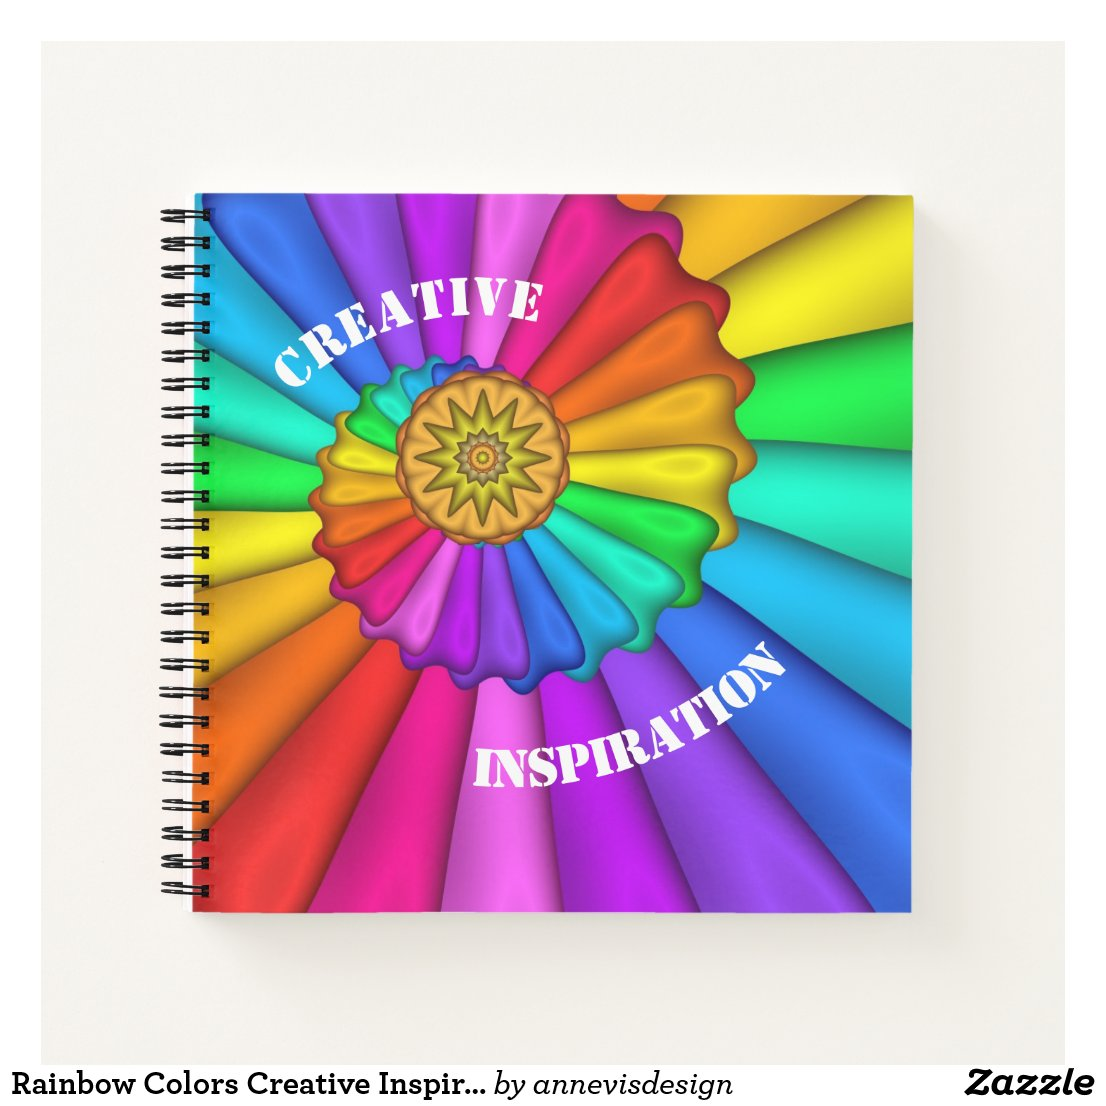 Rainbow Colors Creative Inspiration Notebook